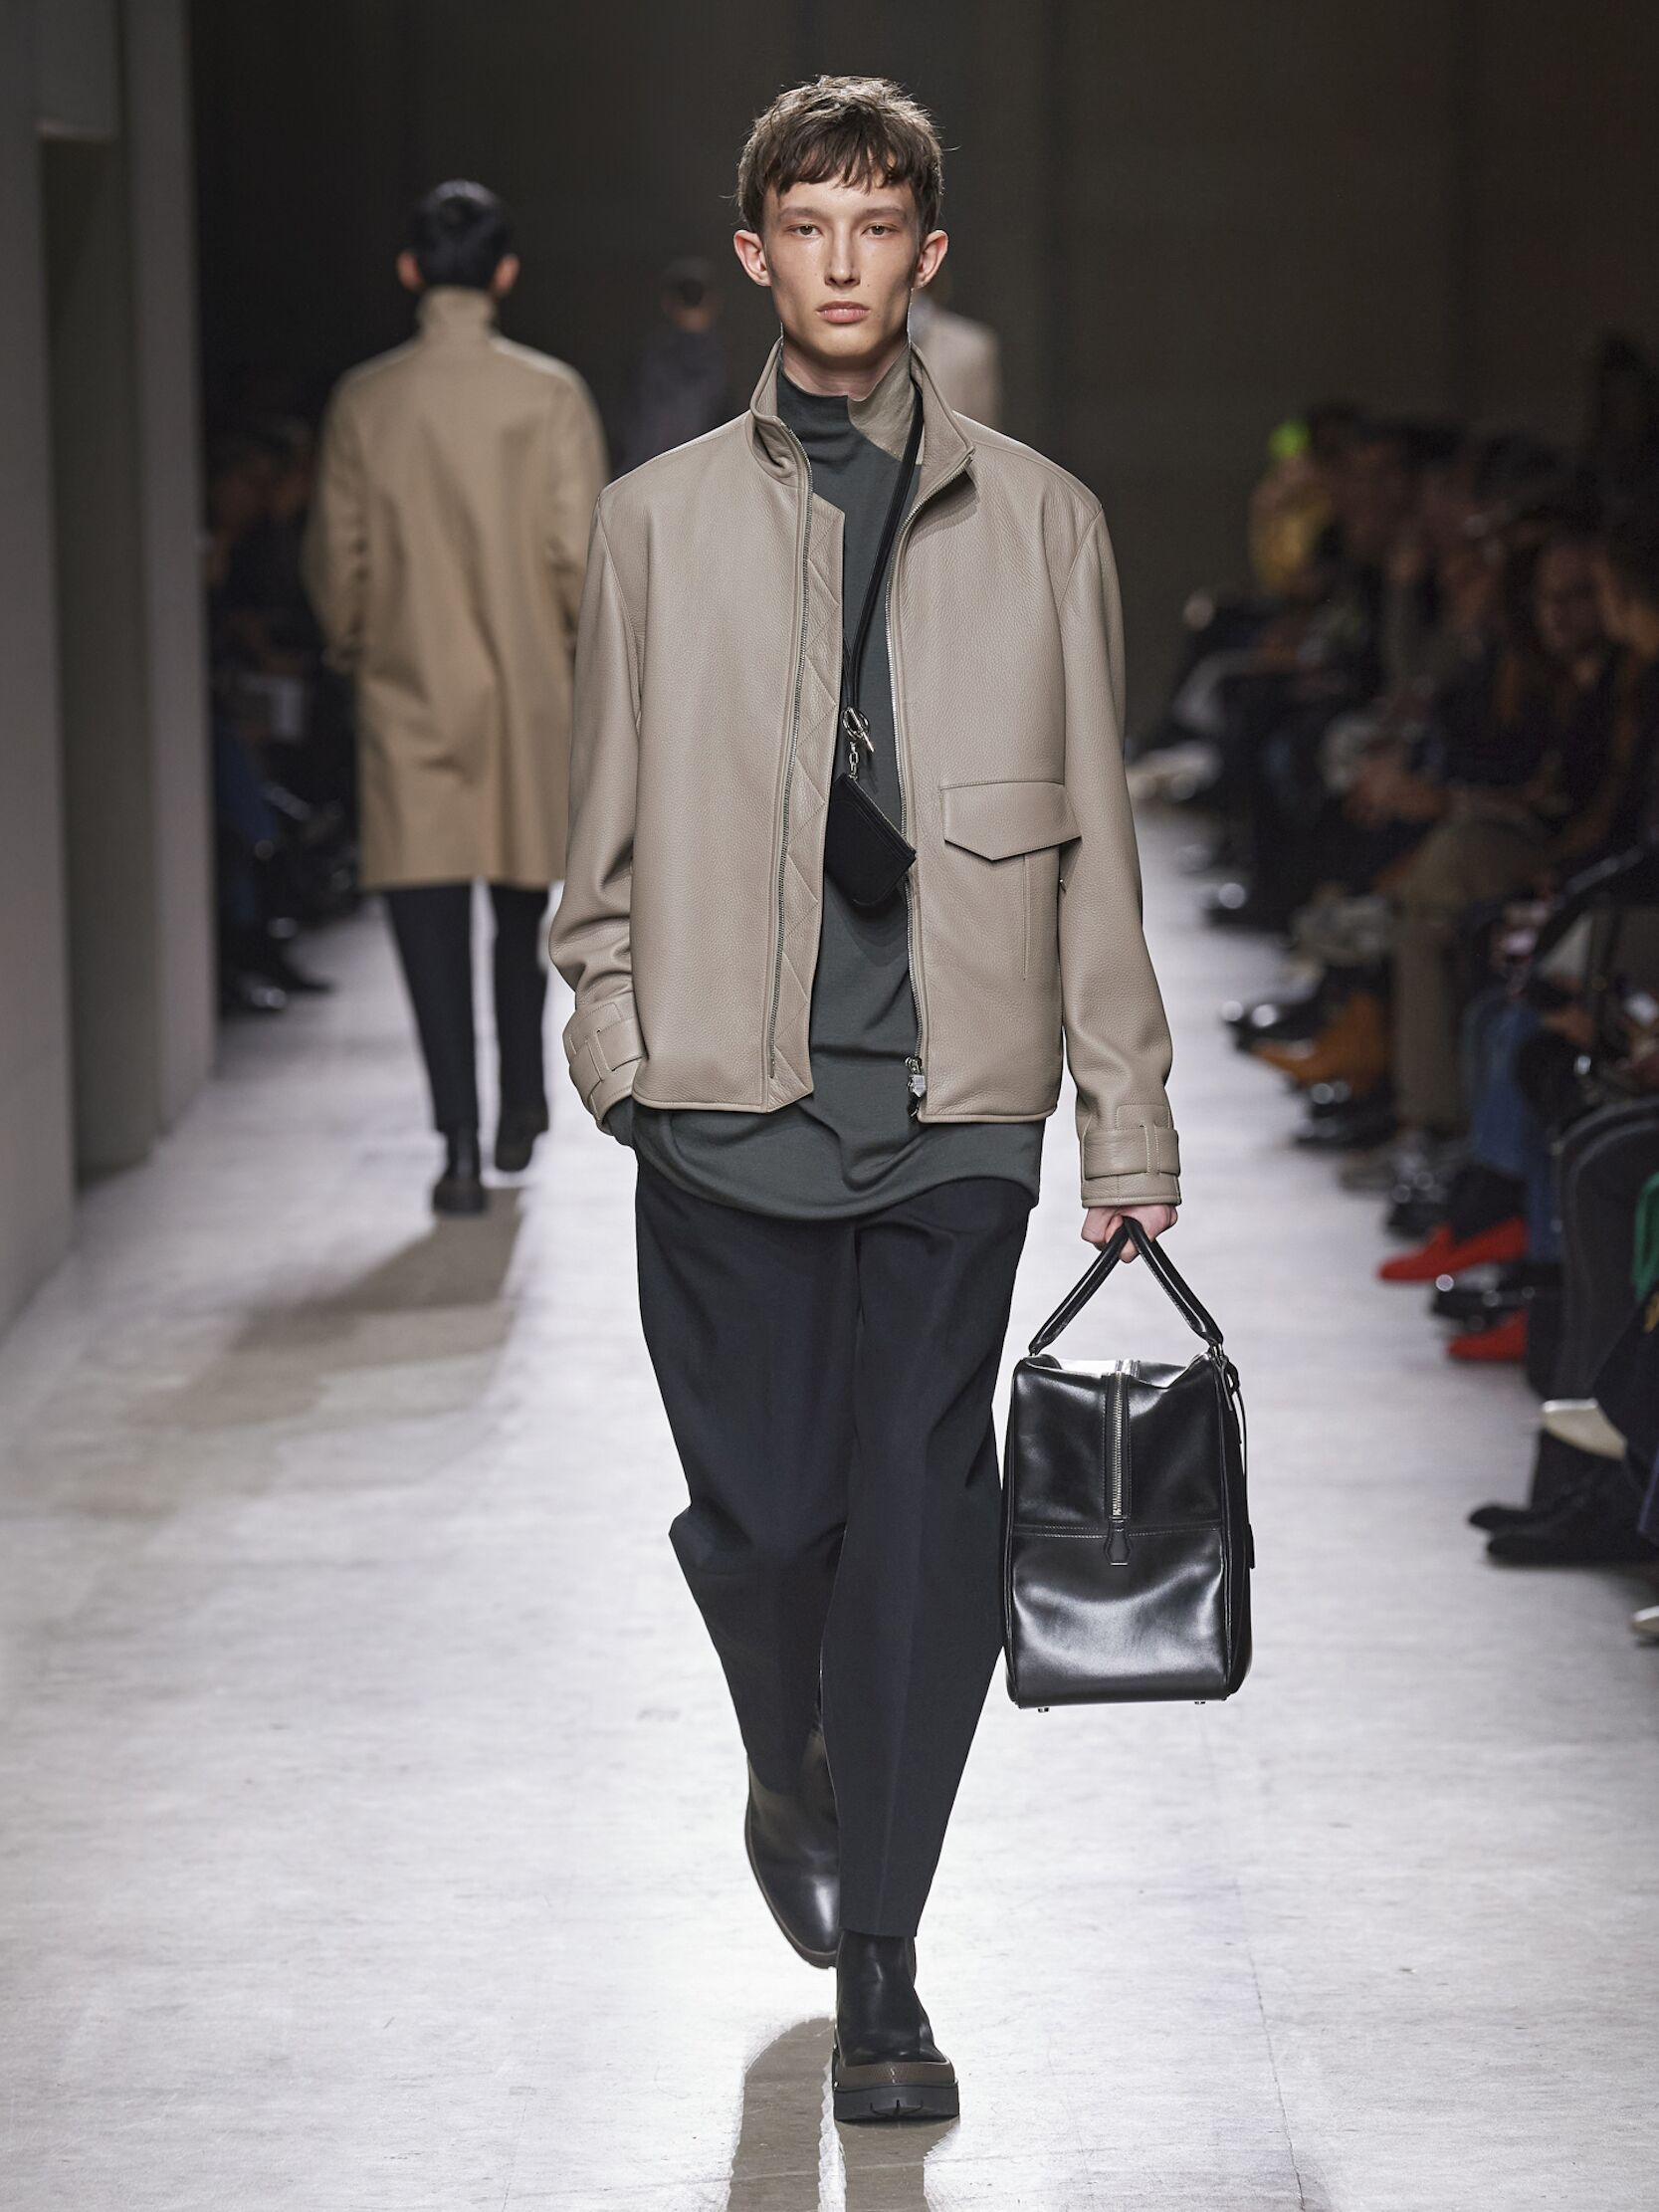 Runway Hermès Fall Winter 2020 Men's Collection Paris Fashion Week